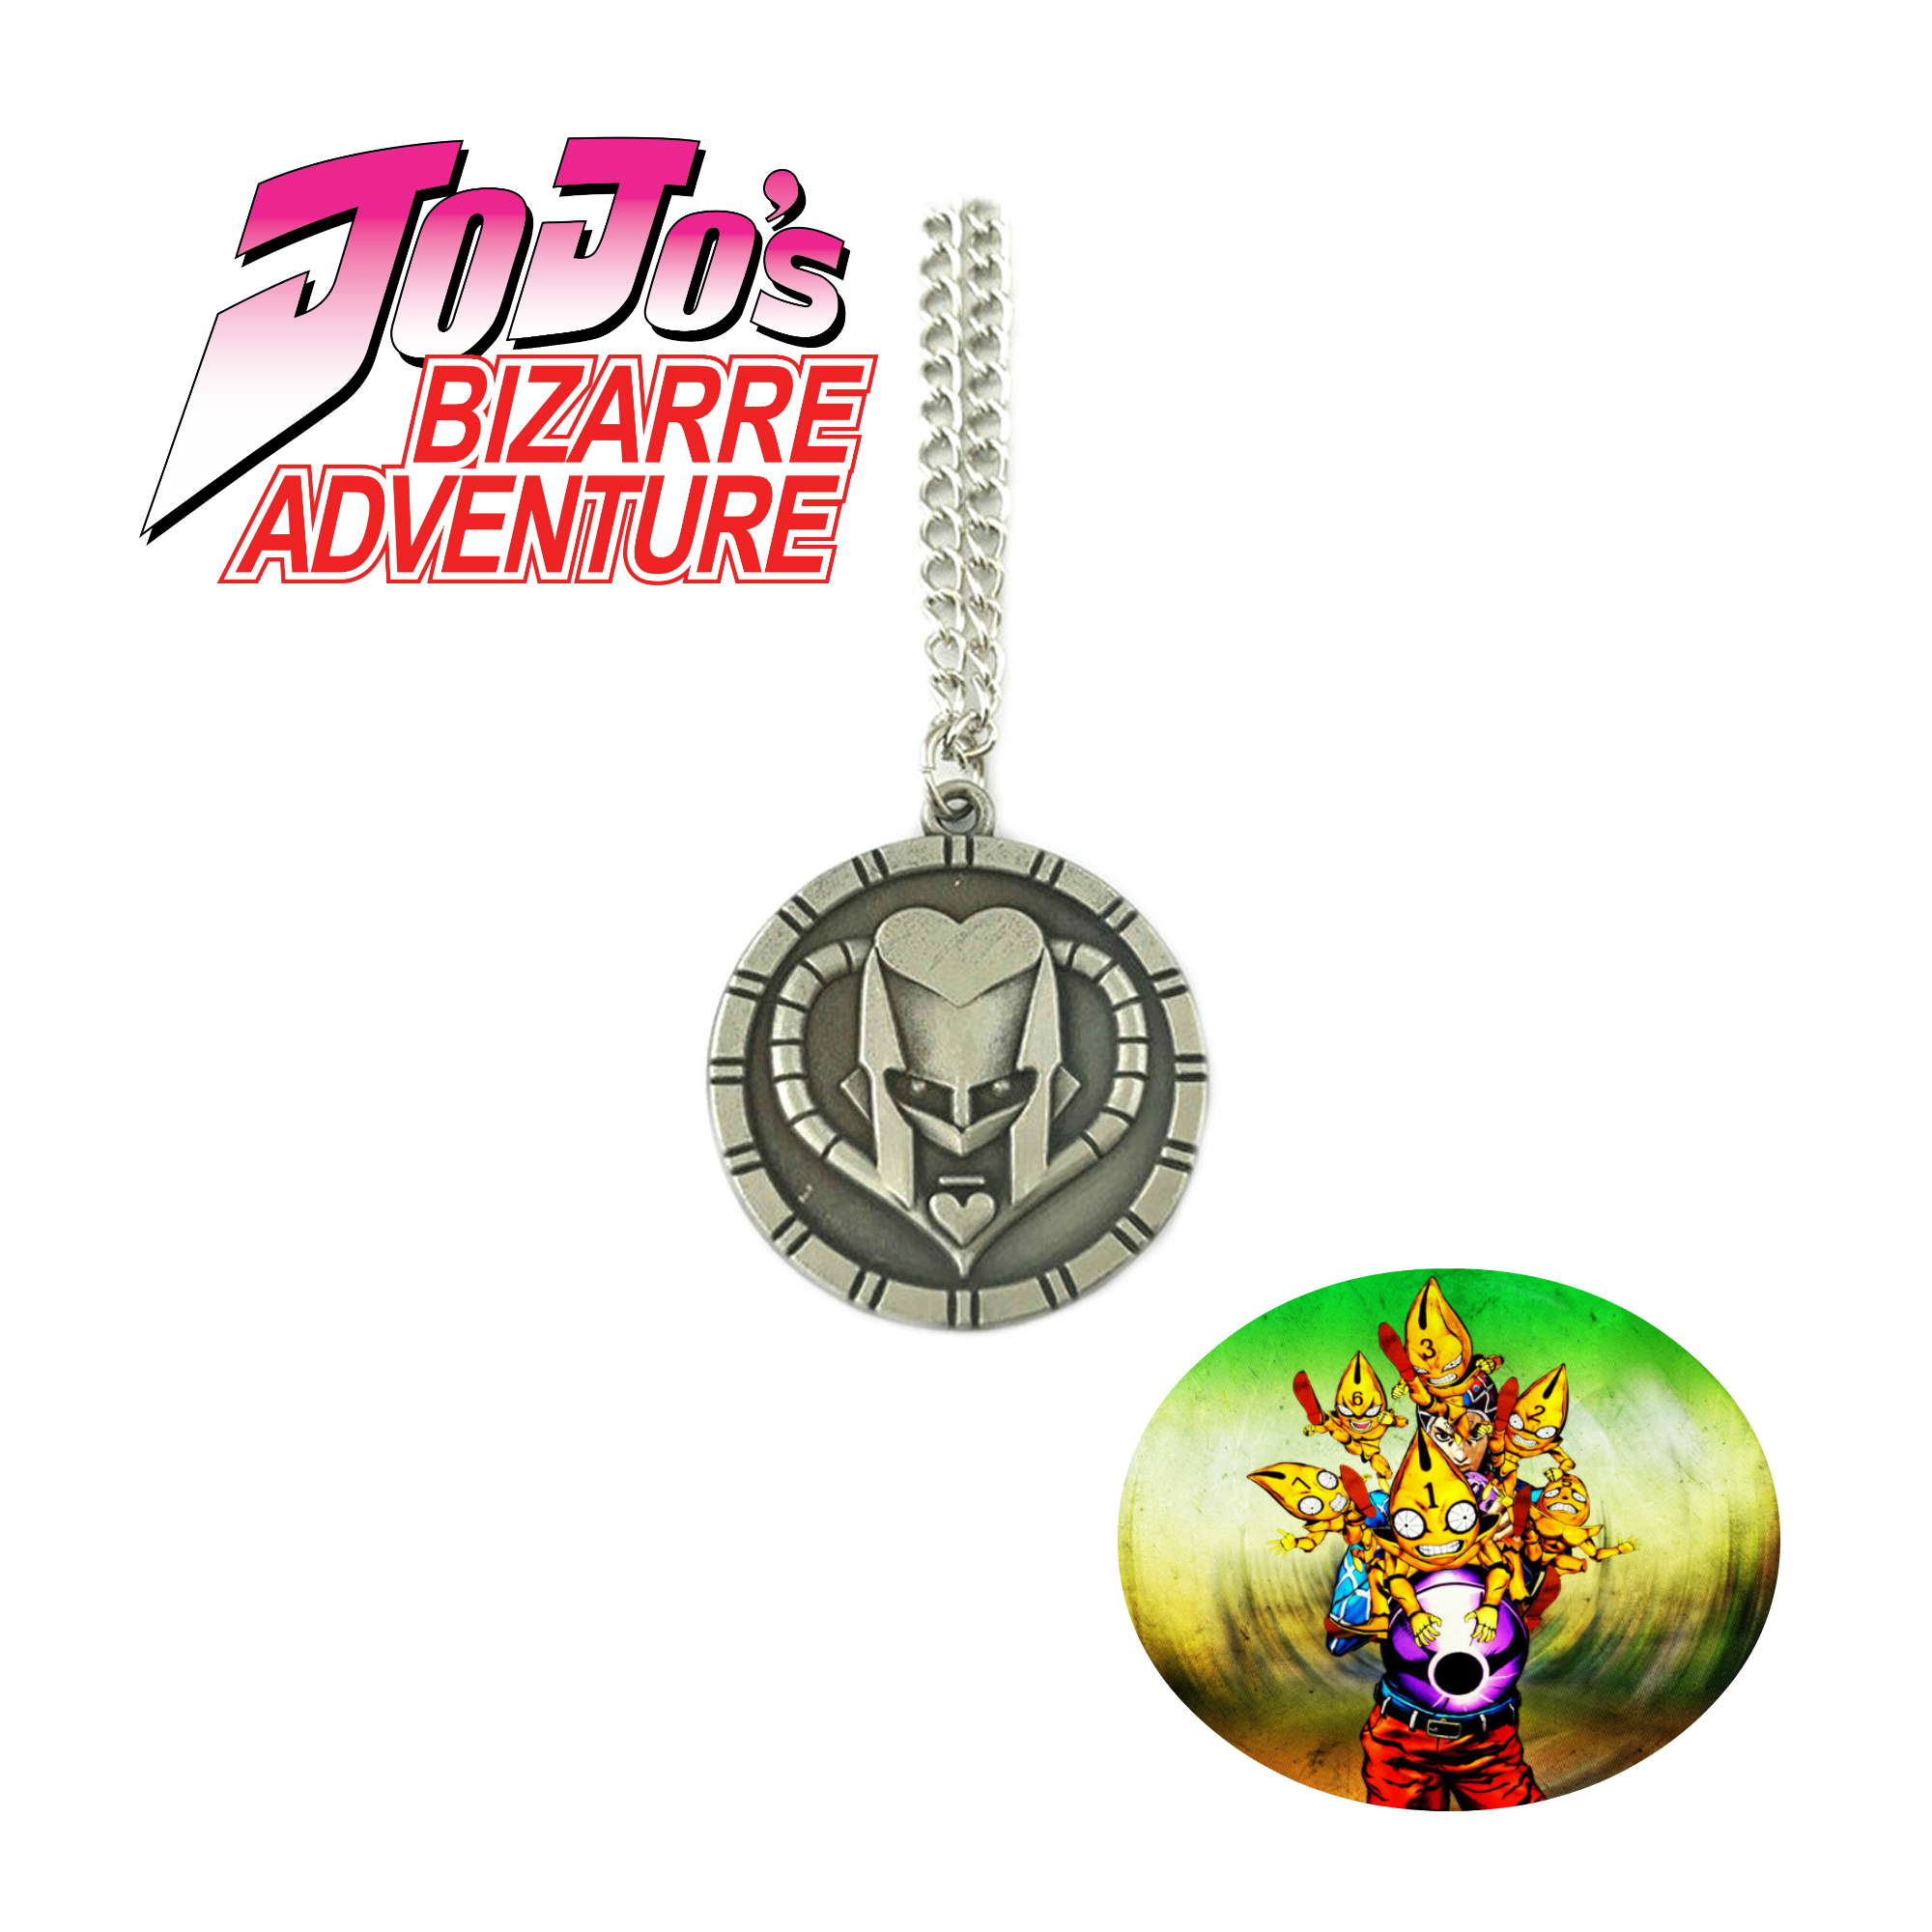 Superheroes Jojo S Bizarre Adventure Necklace Pendant Head Circle Anime Manga Game Tv Series Cosplay By Superheroes Walmart Com Walmart Com Replaces the throwable javelin spear weapon from gage chivalry pack with the requiem stand arrow from jojo's bizarre adventure: walmart